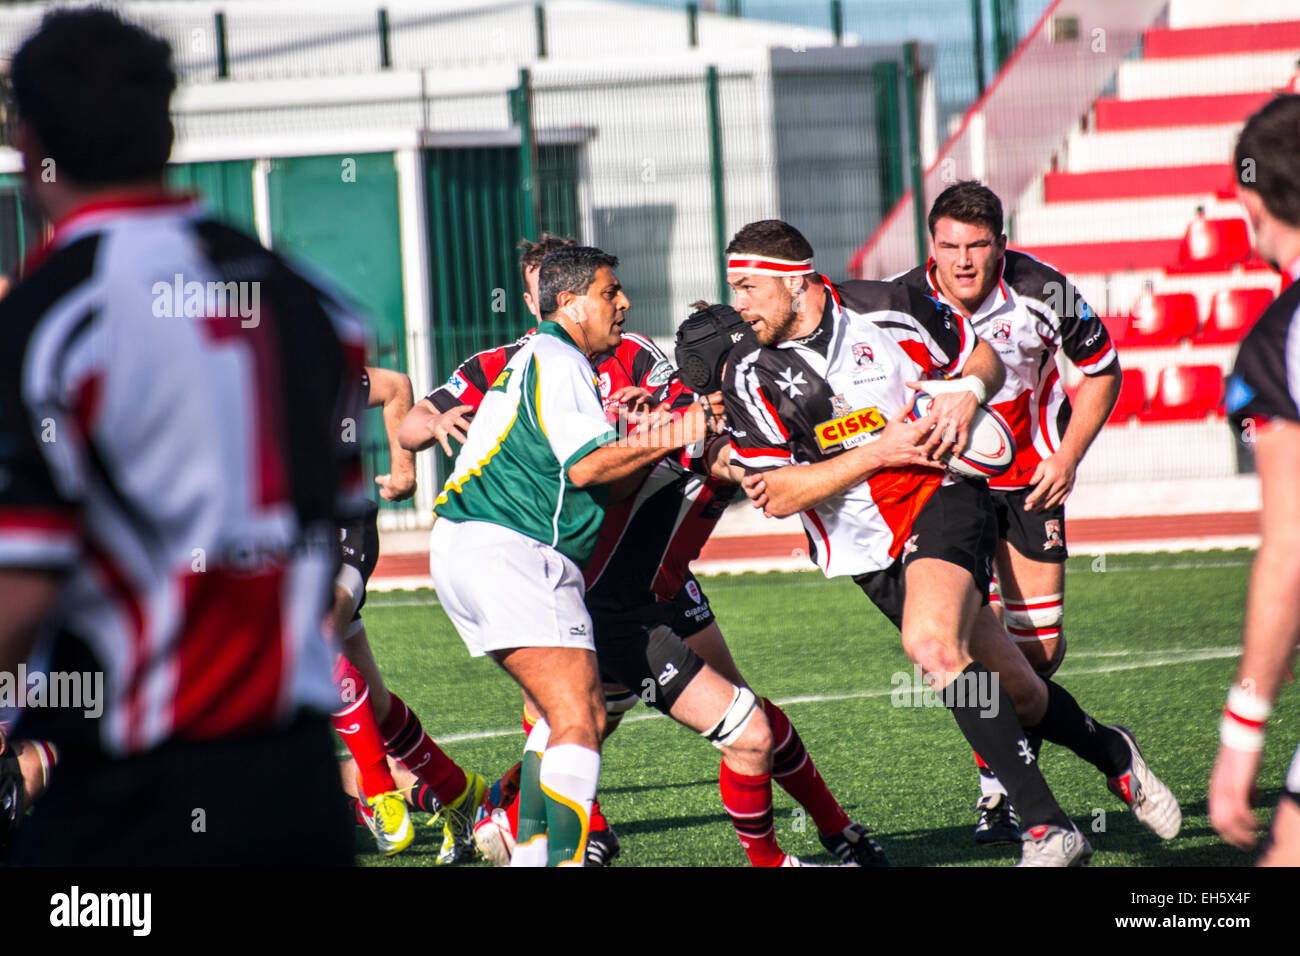 Gibraltar - 7th March 2015 - Gibraltar were beaten 8-33 by Malta in the friendly international rugby match played - Stock Image